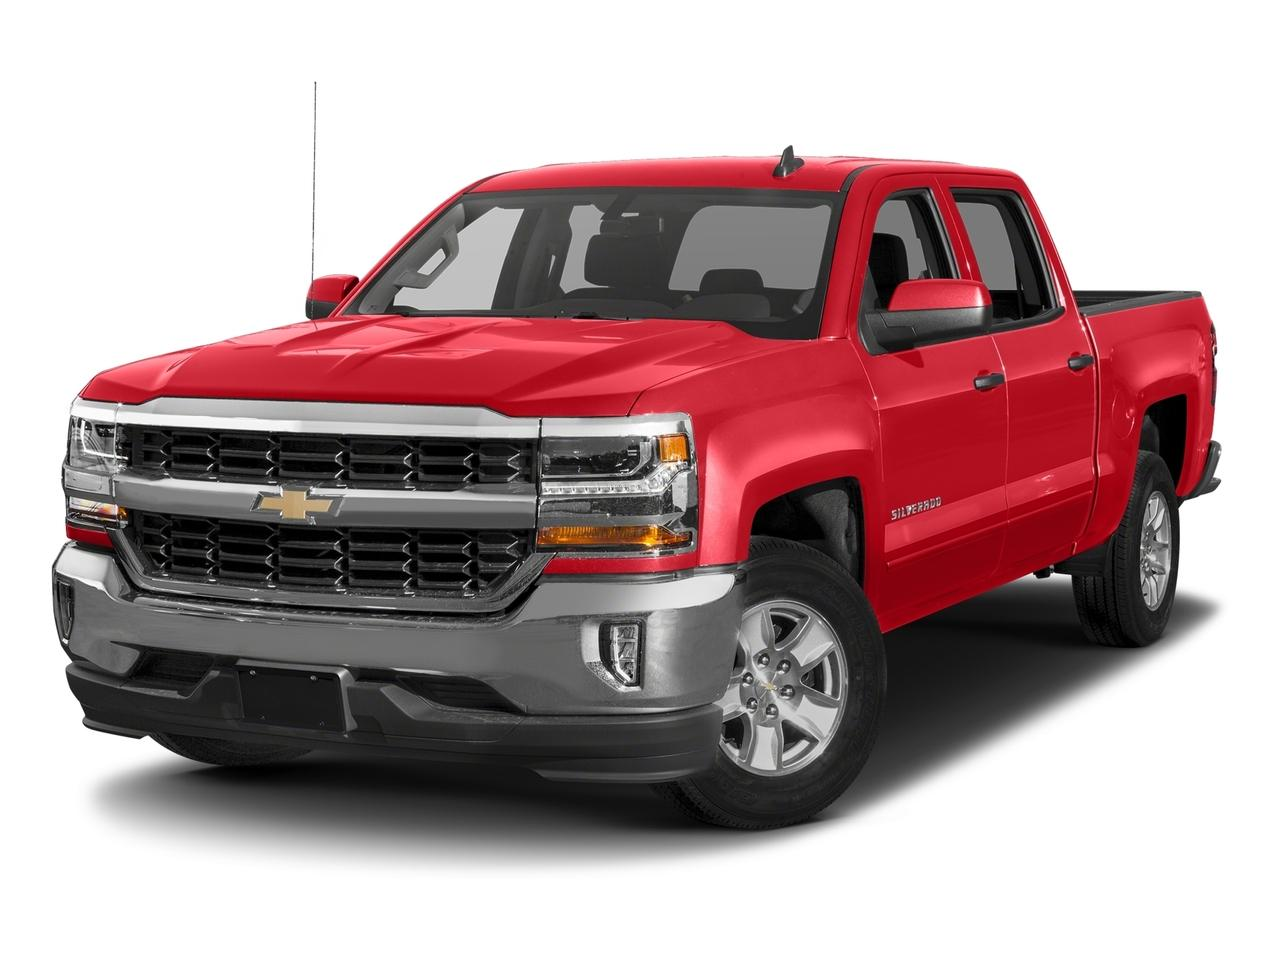 2017 Chevrolet Silverado 1500 Vehicle Photo in San Antonio, TX 78230